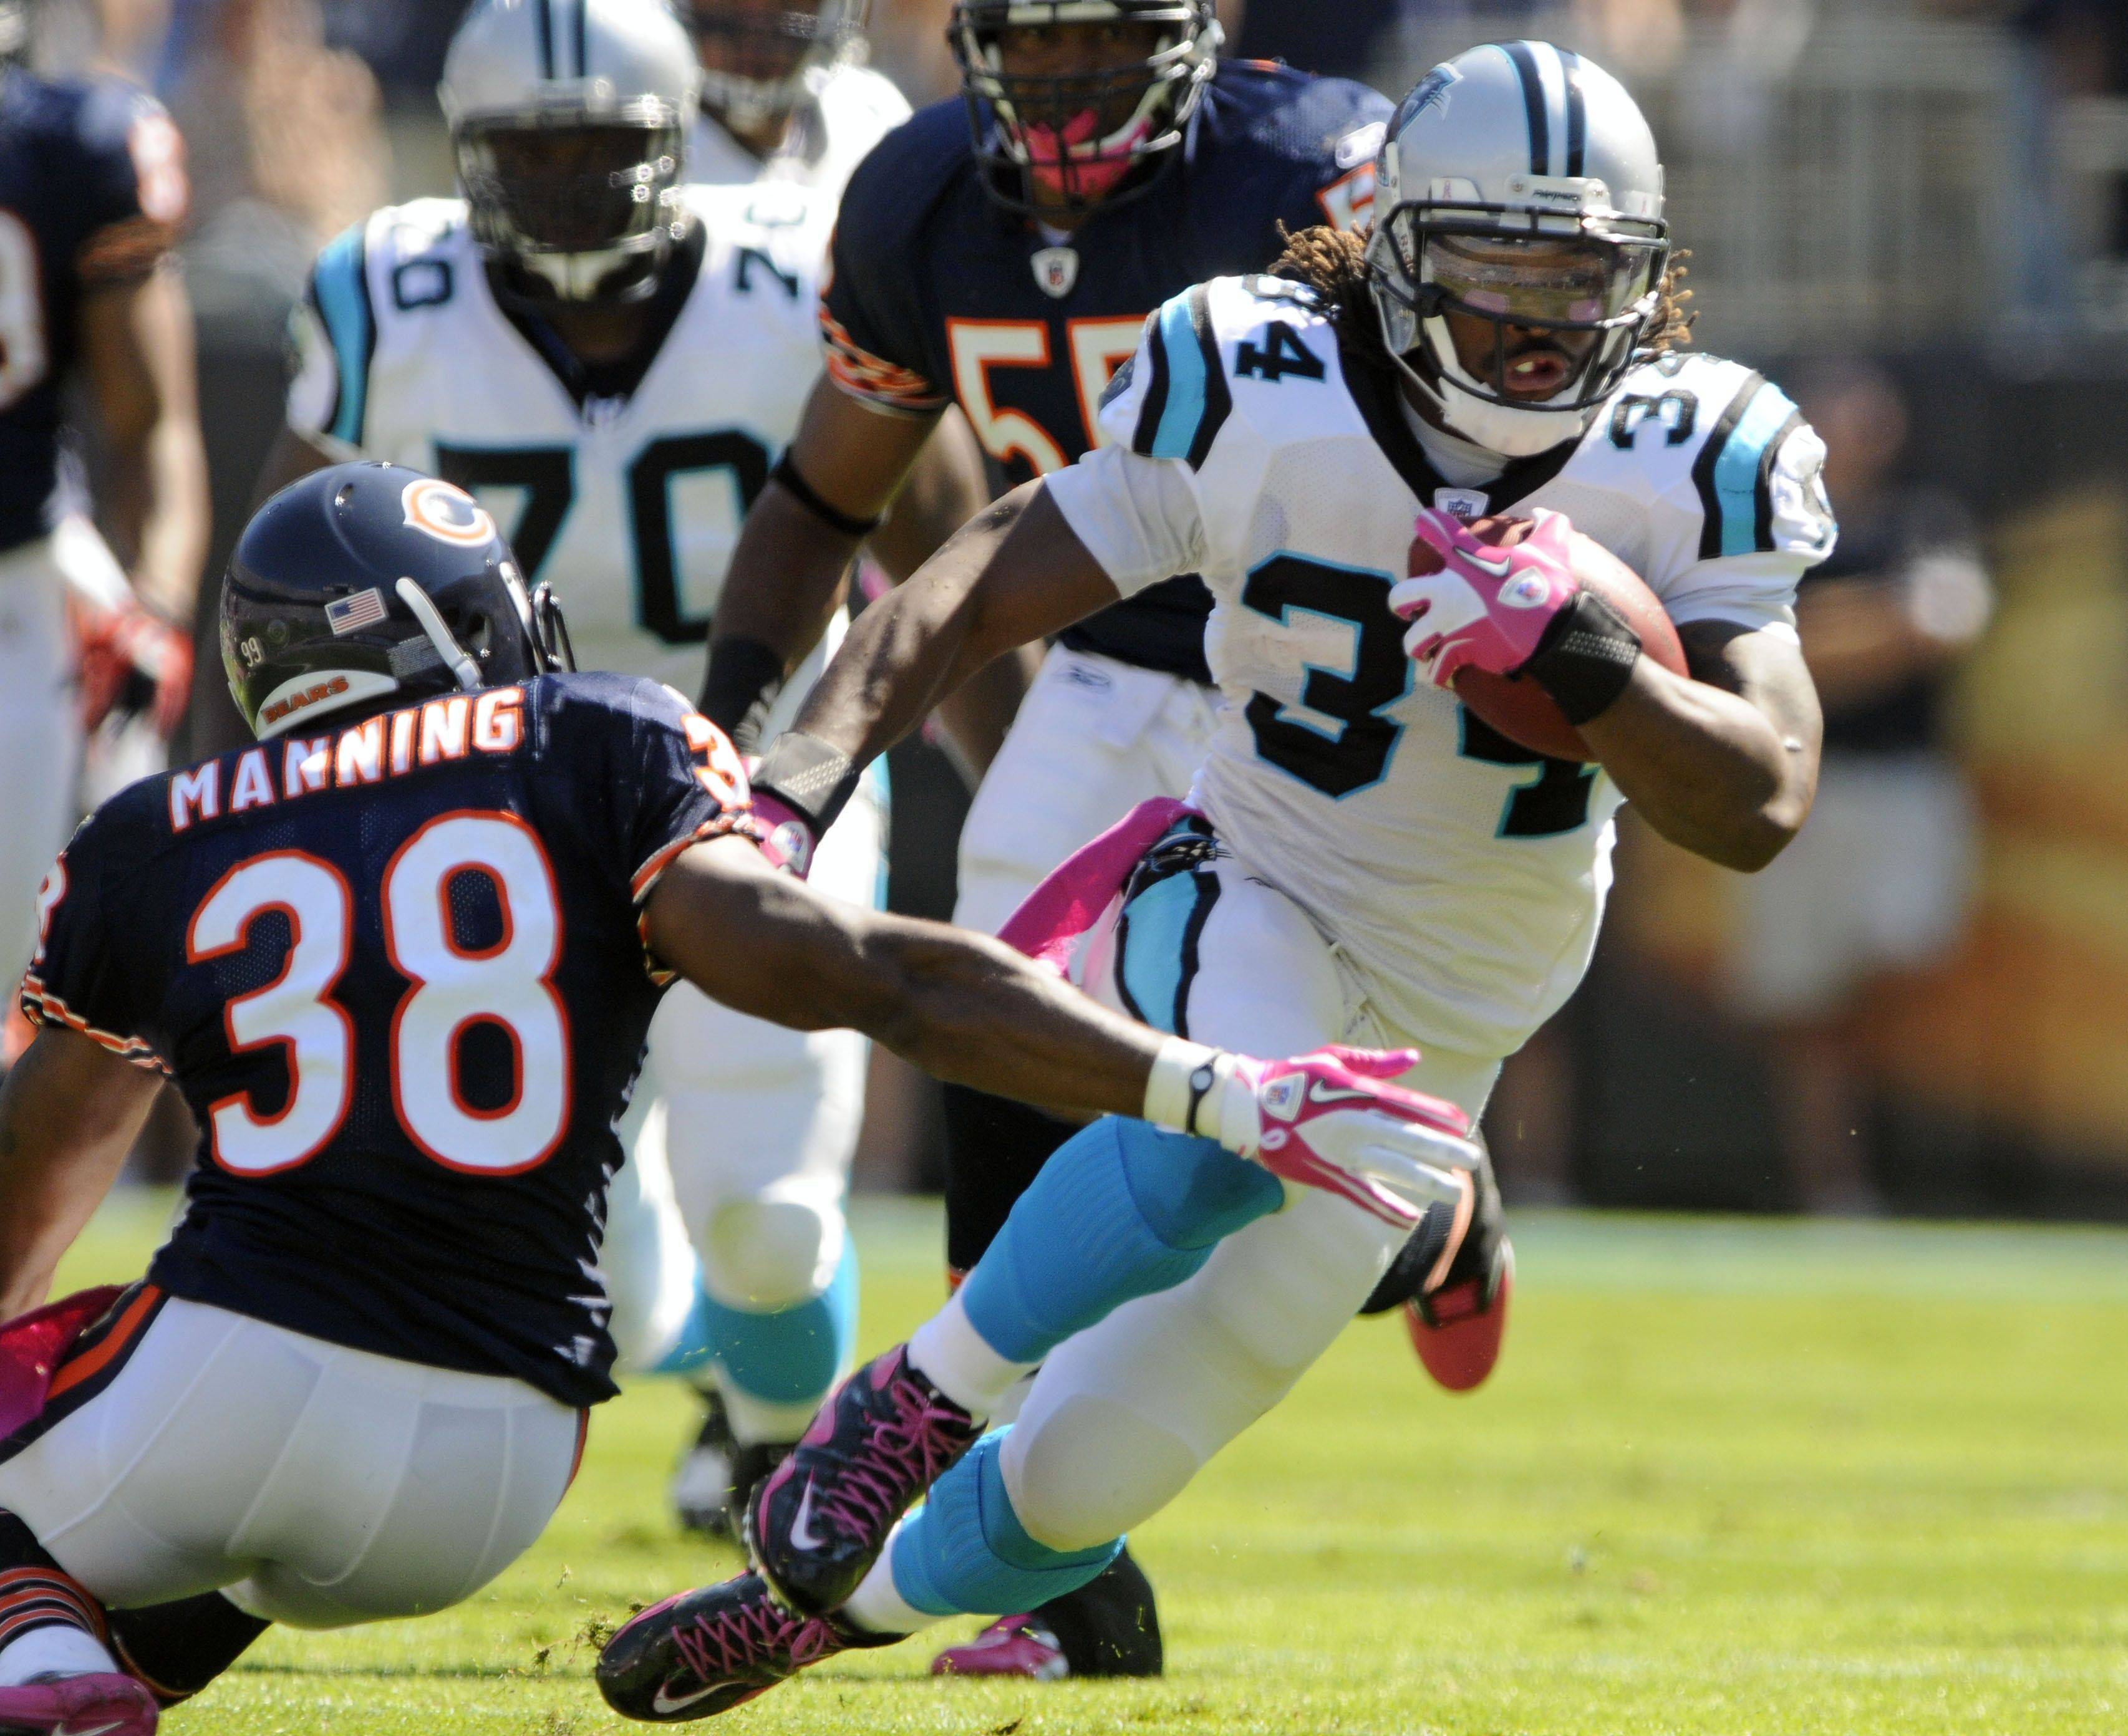 Carolina Panthers' DeAngelo Williams runs through the tackle of Chicago Bears' Danieal Manning in the first half.